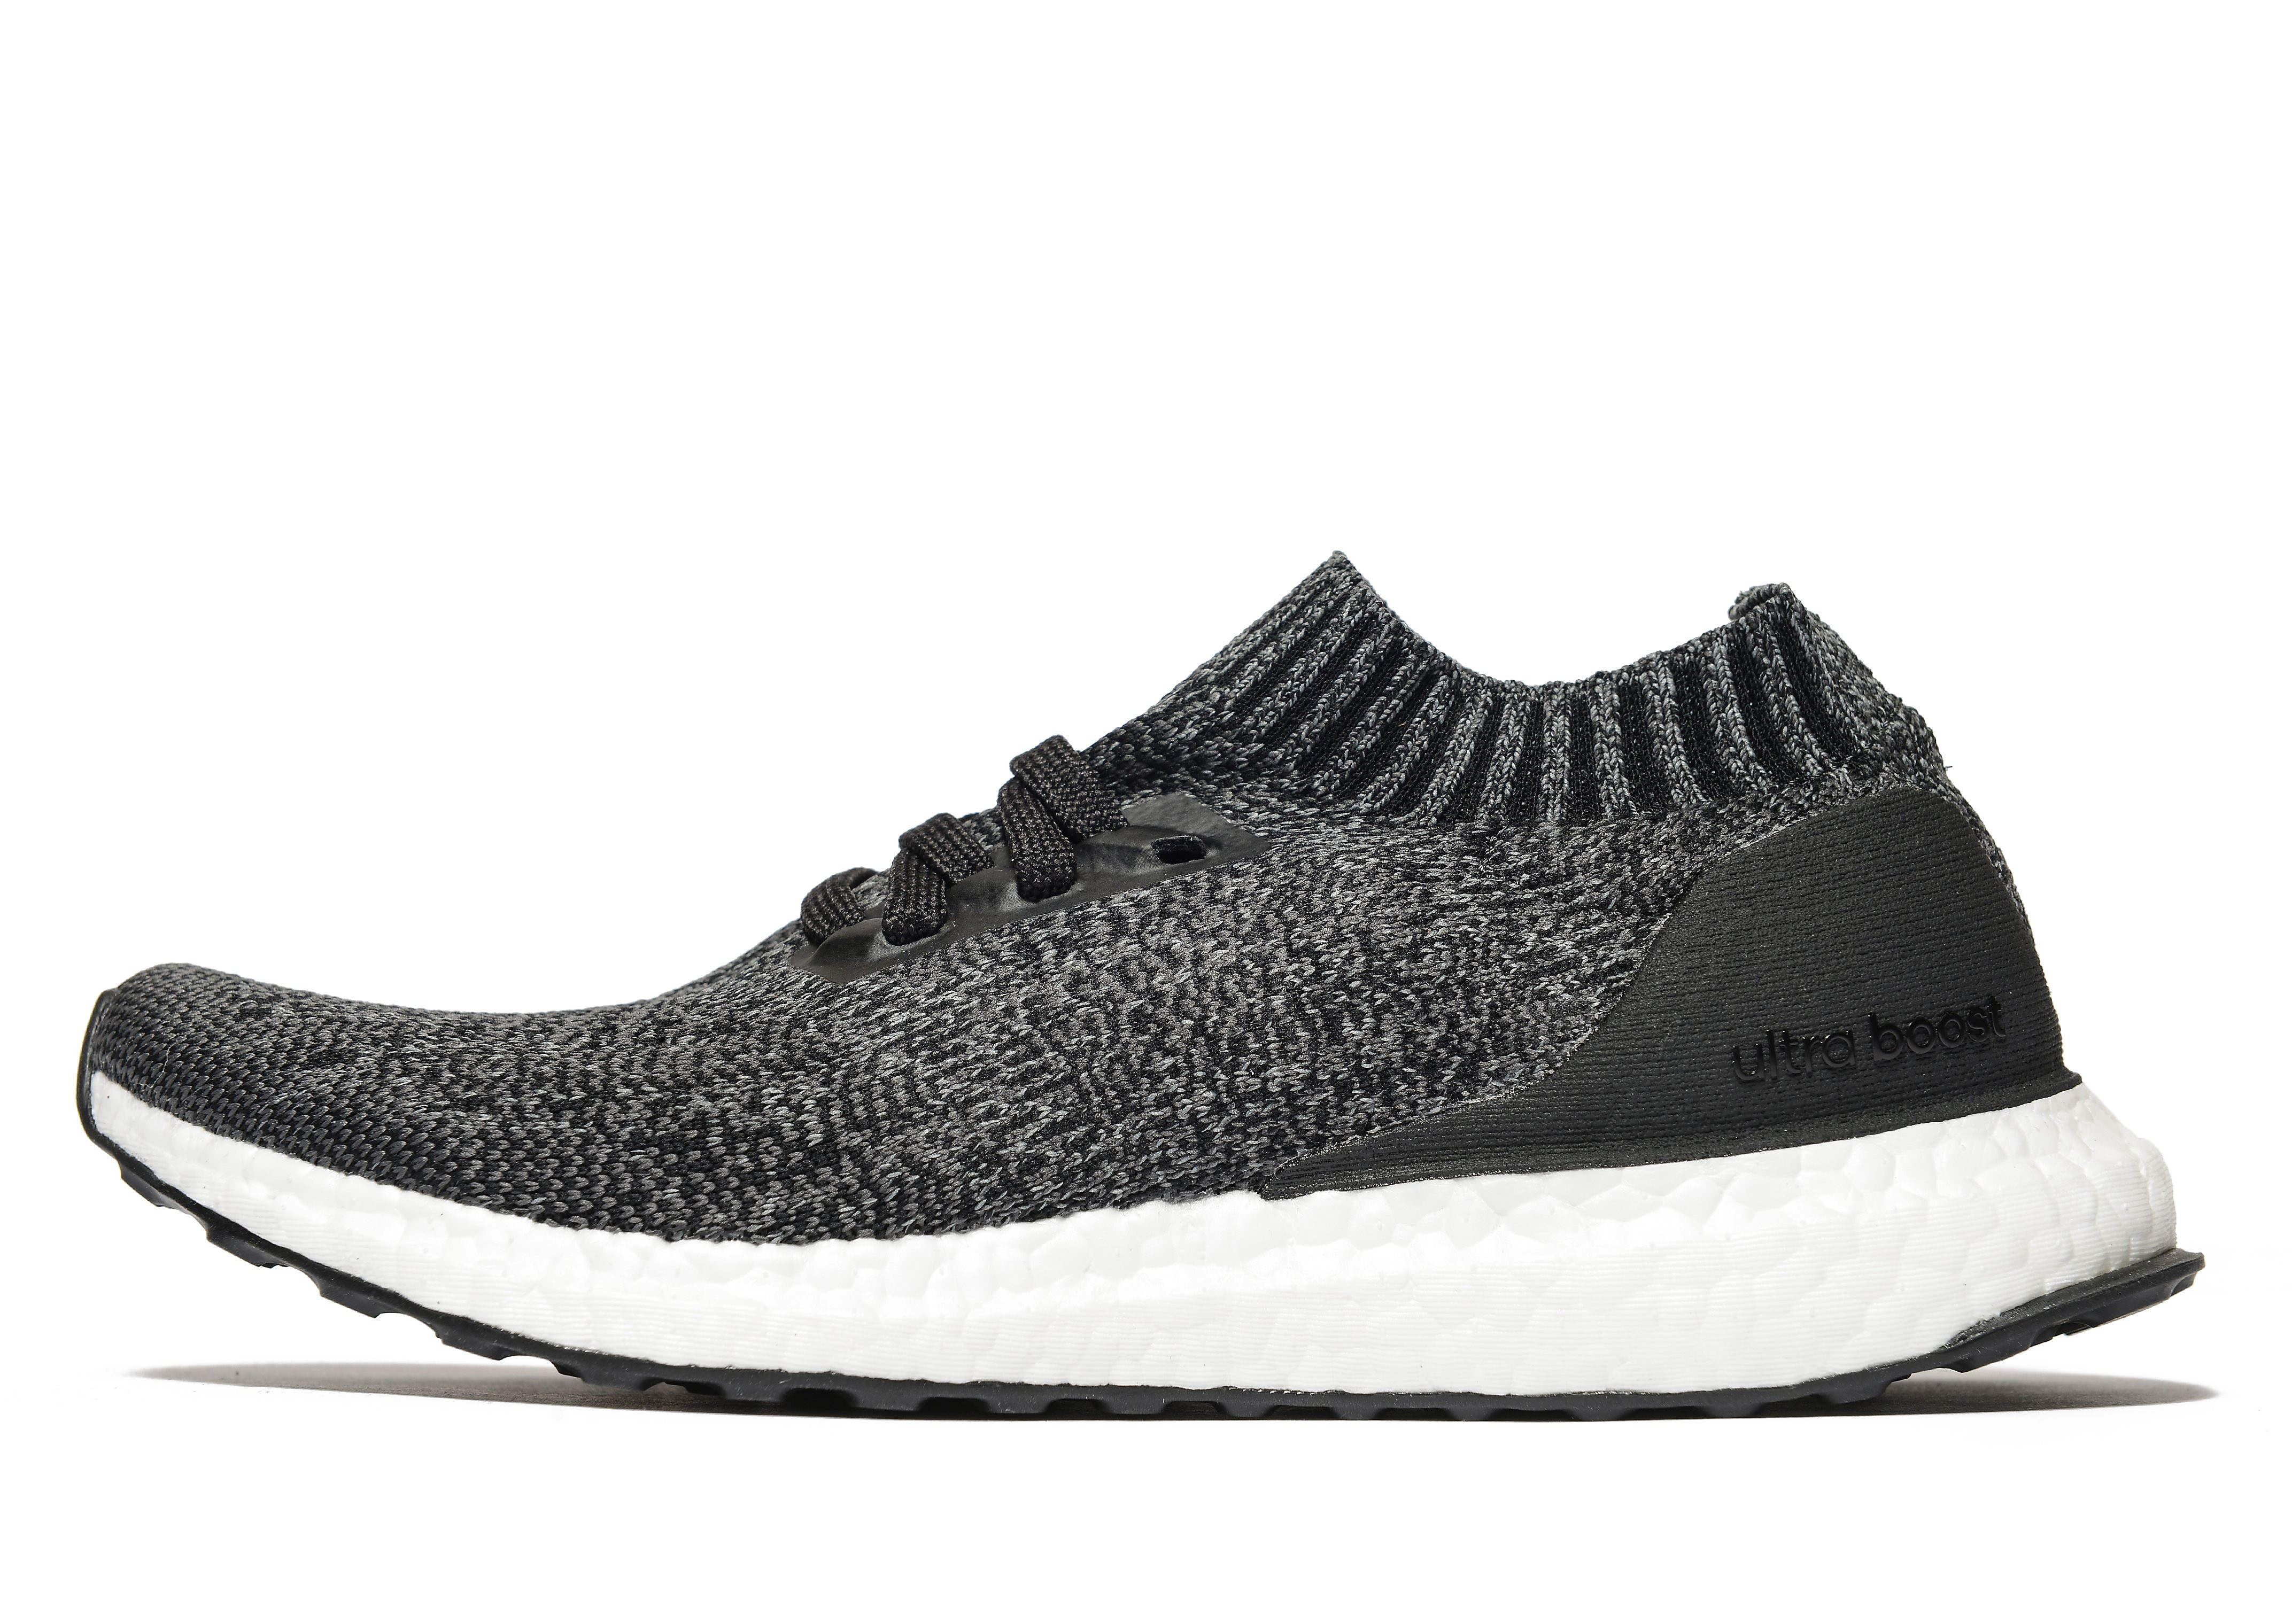 adidas Ultra Boost Uncaged Women's